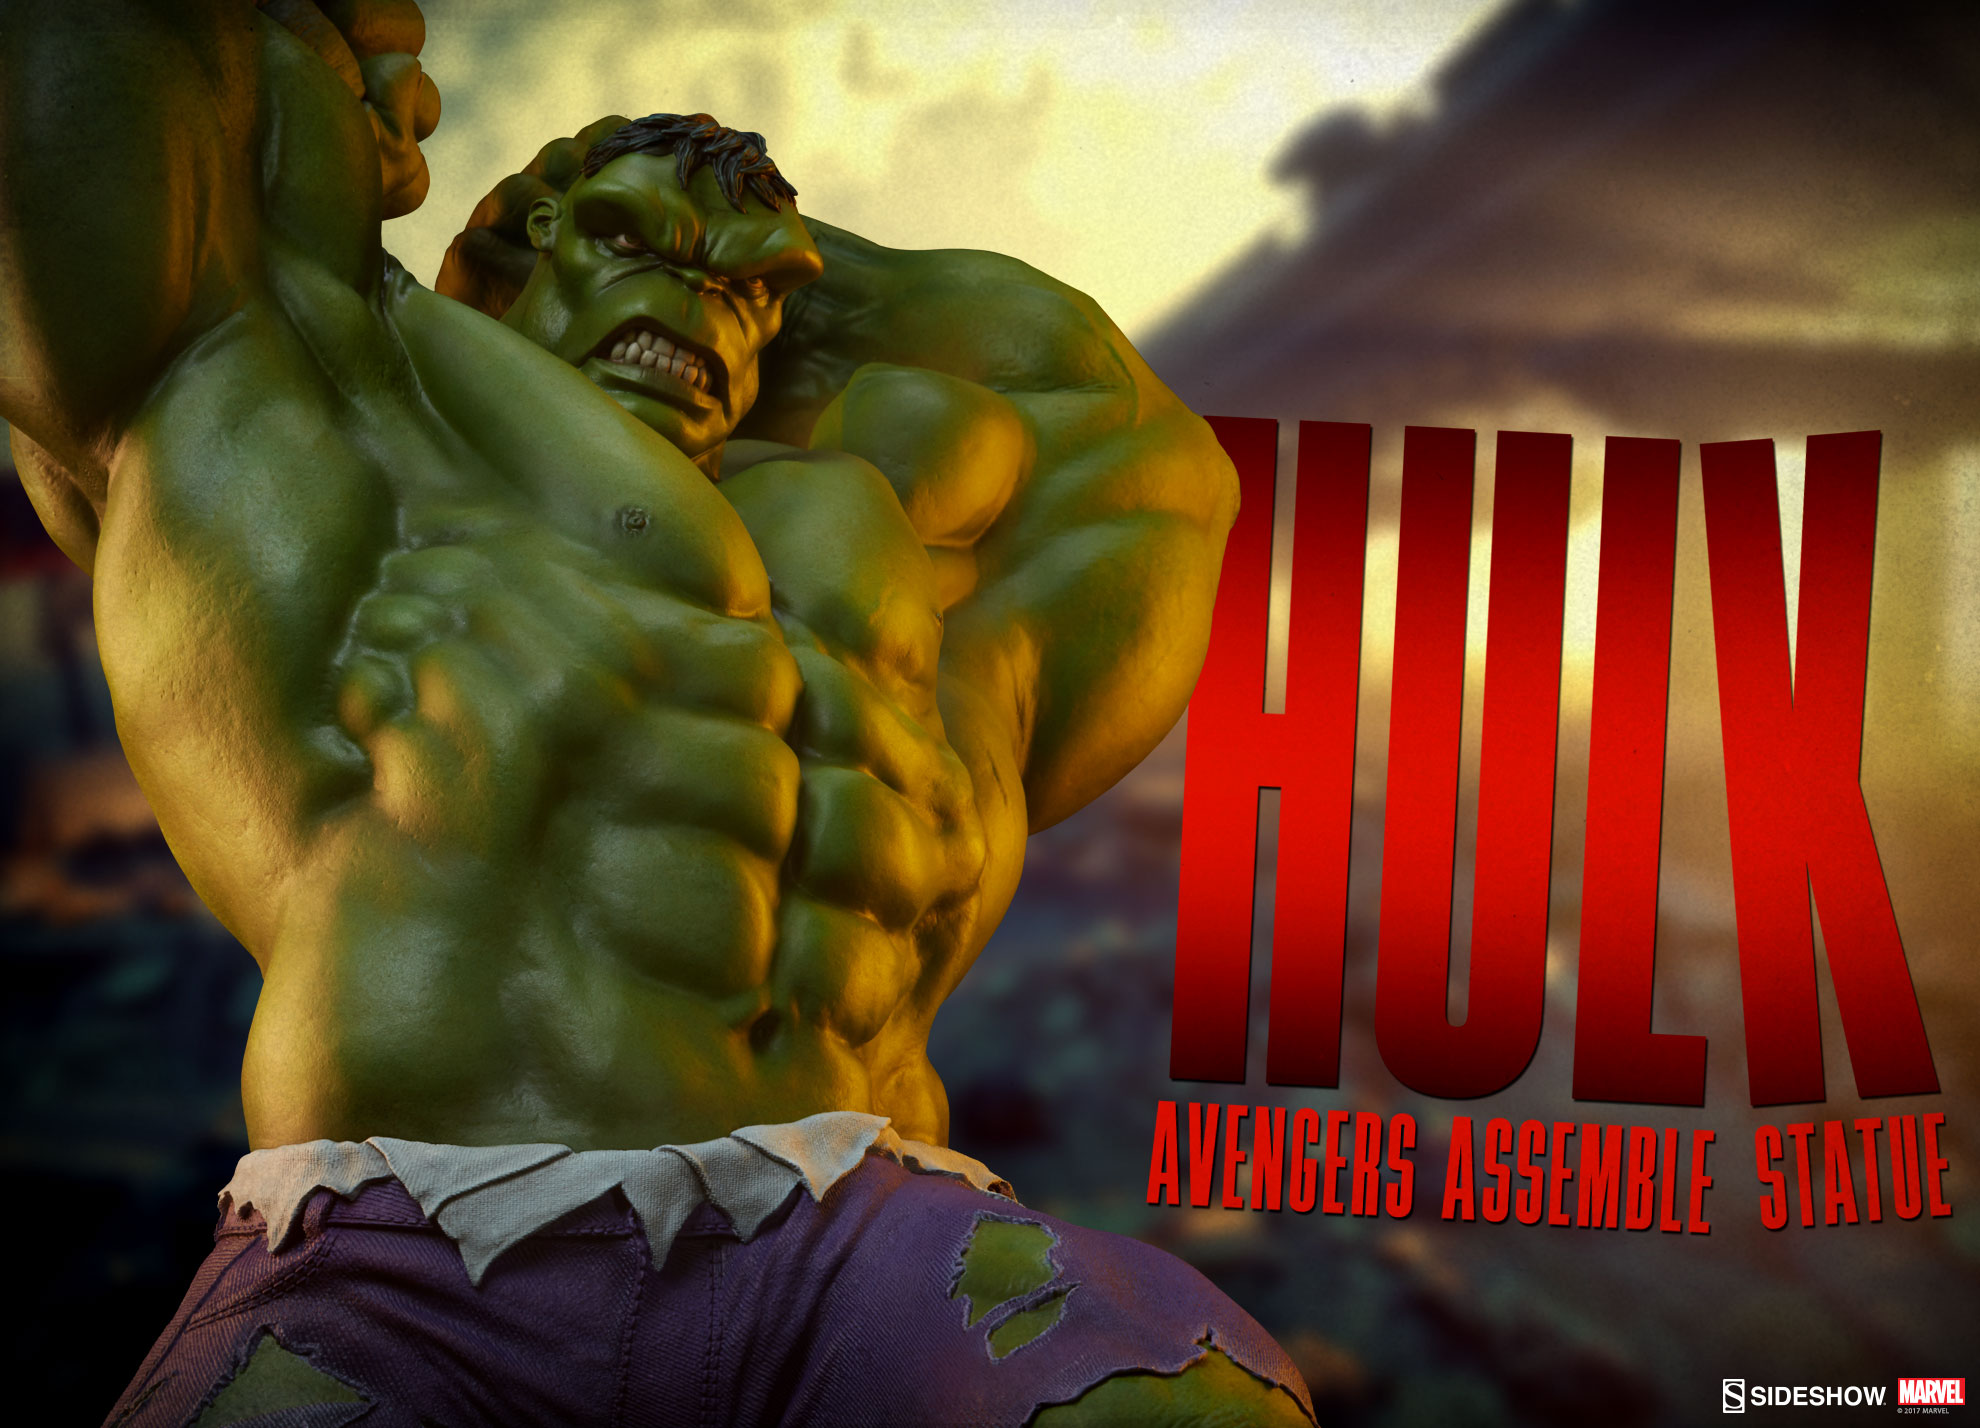 hulk statue avengers assemble sideshow collectibles